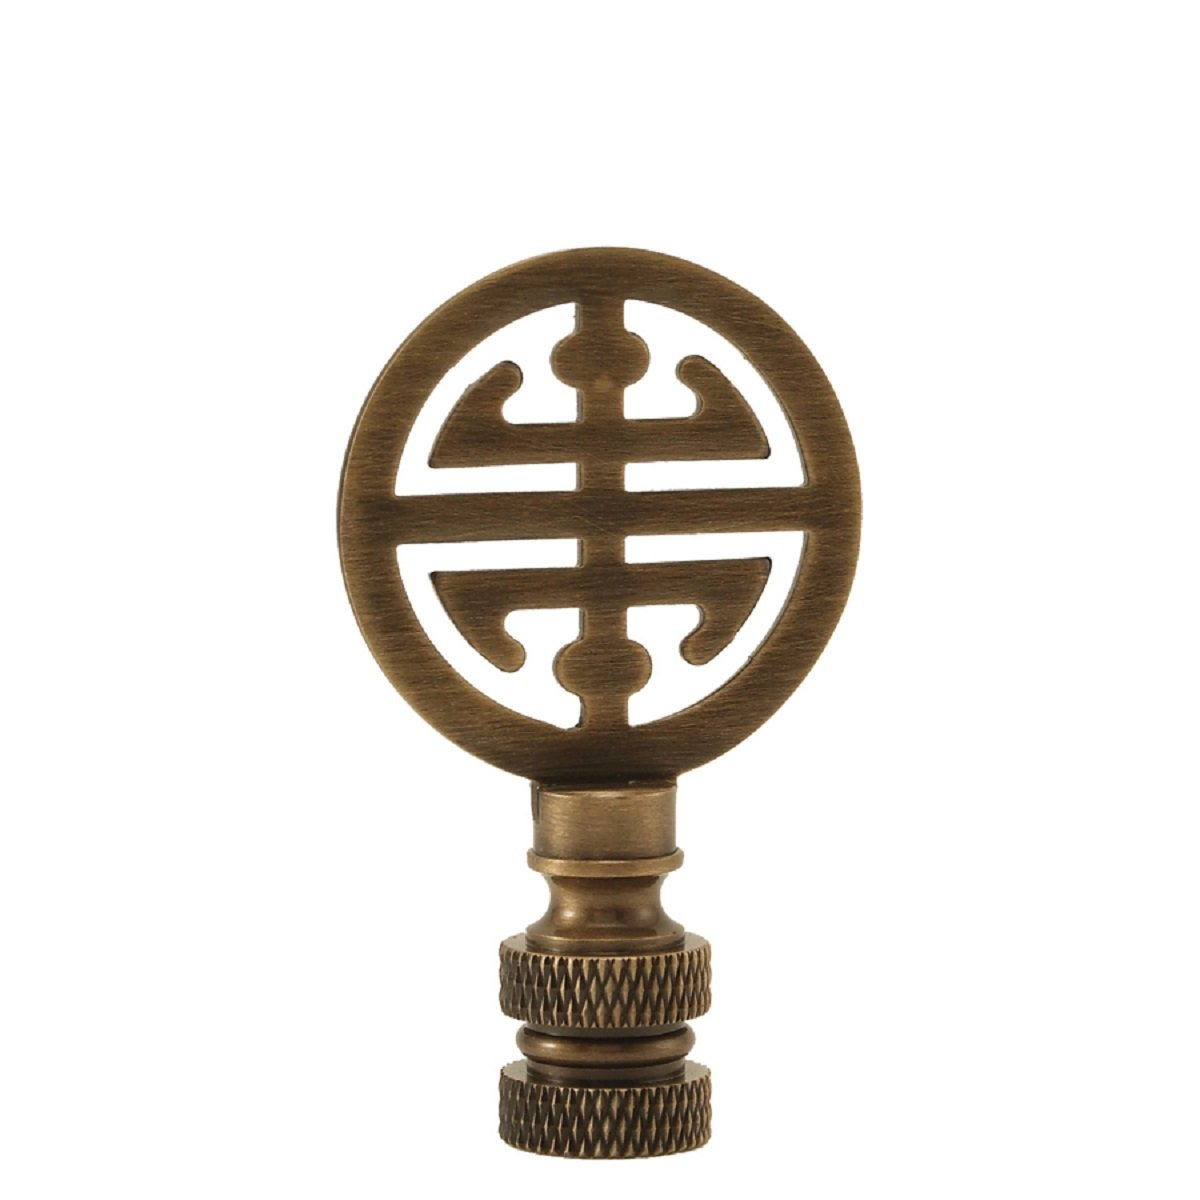 Asian Sign Lamp Finial -Antique Brass - Choice of Sizes -2.75 Inches (2.75 Inch)